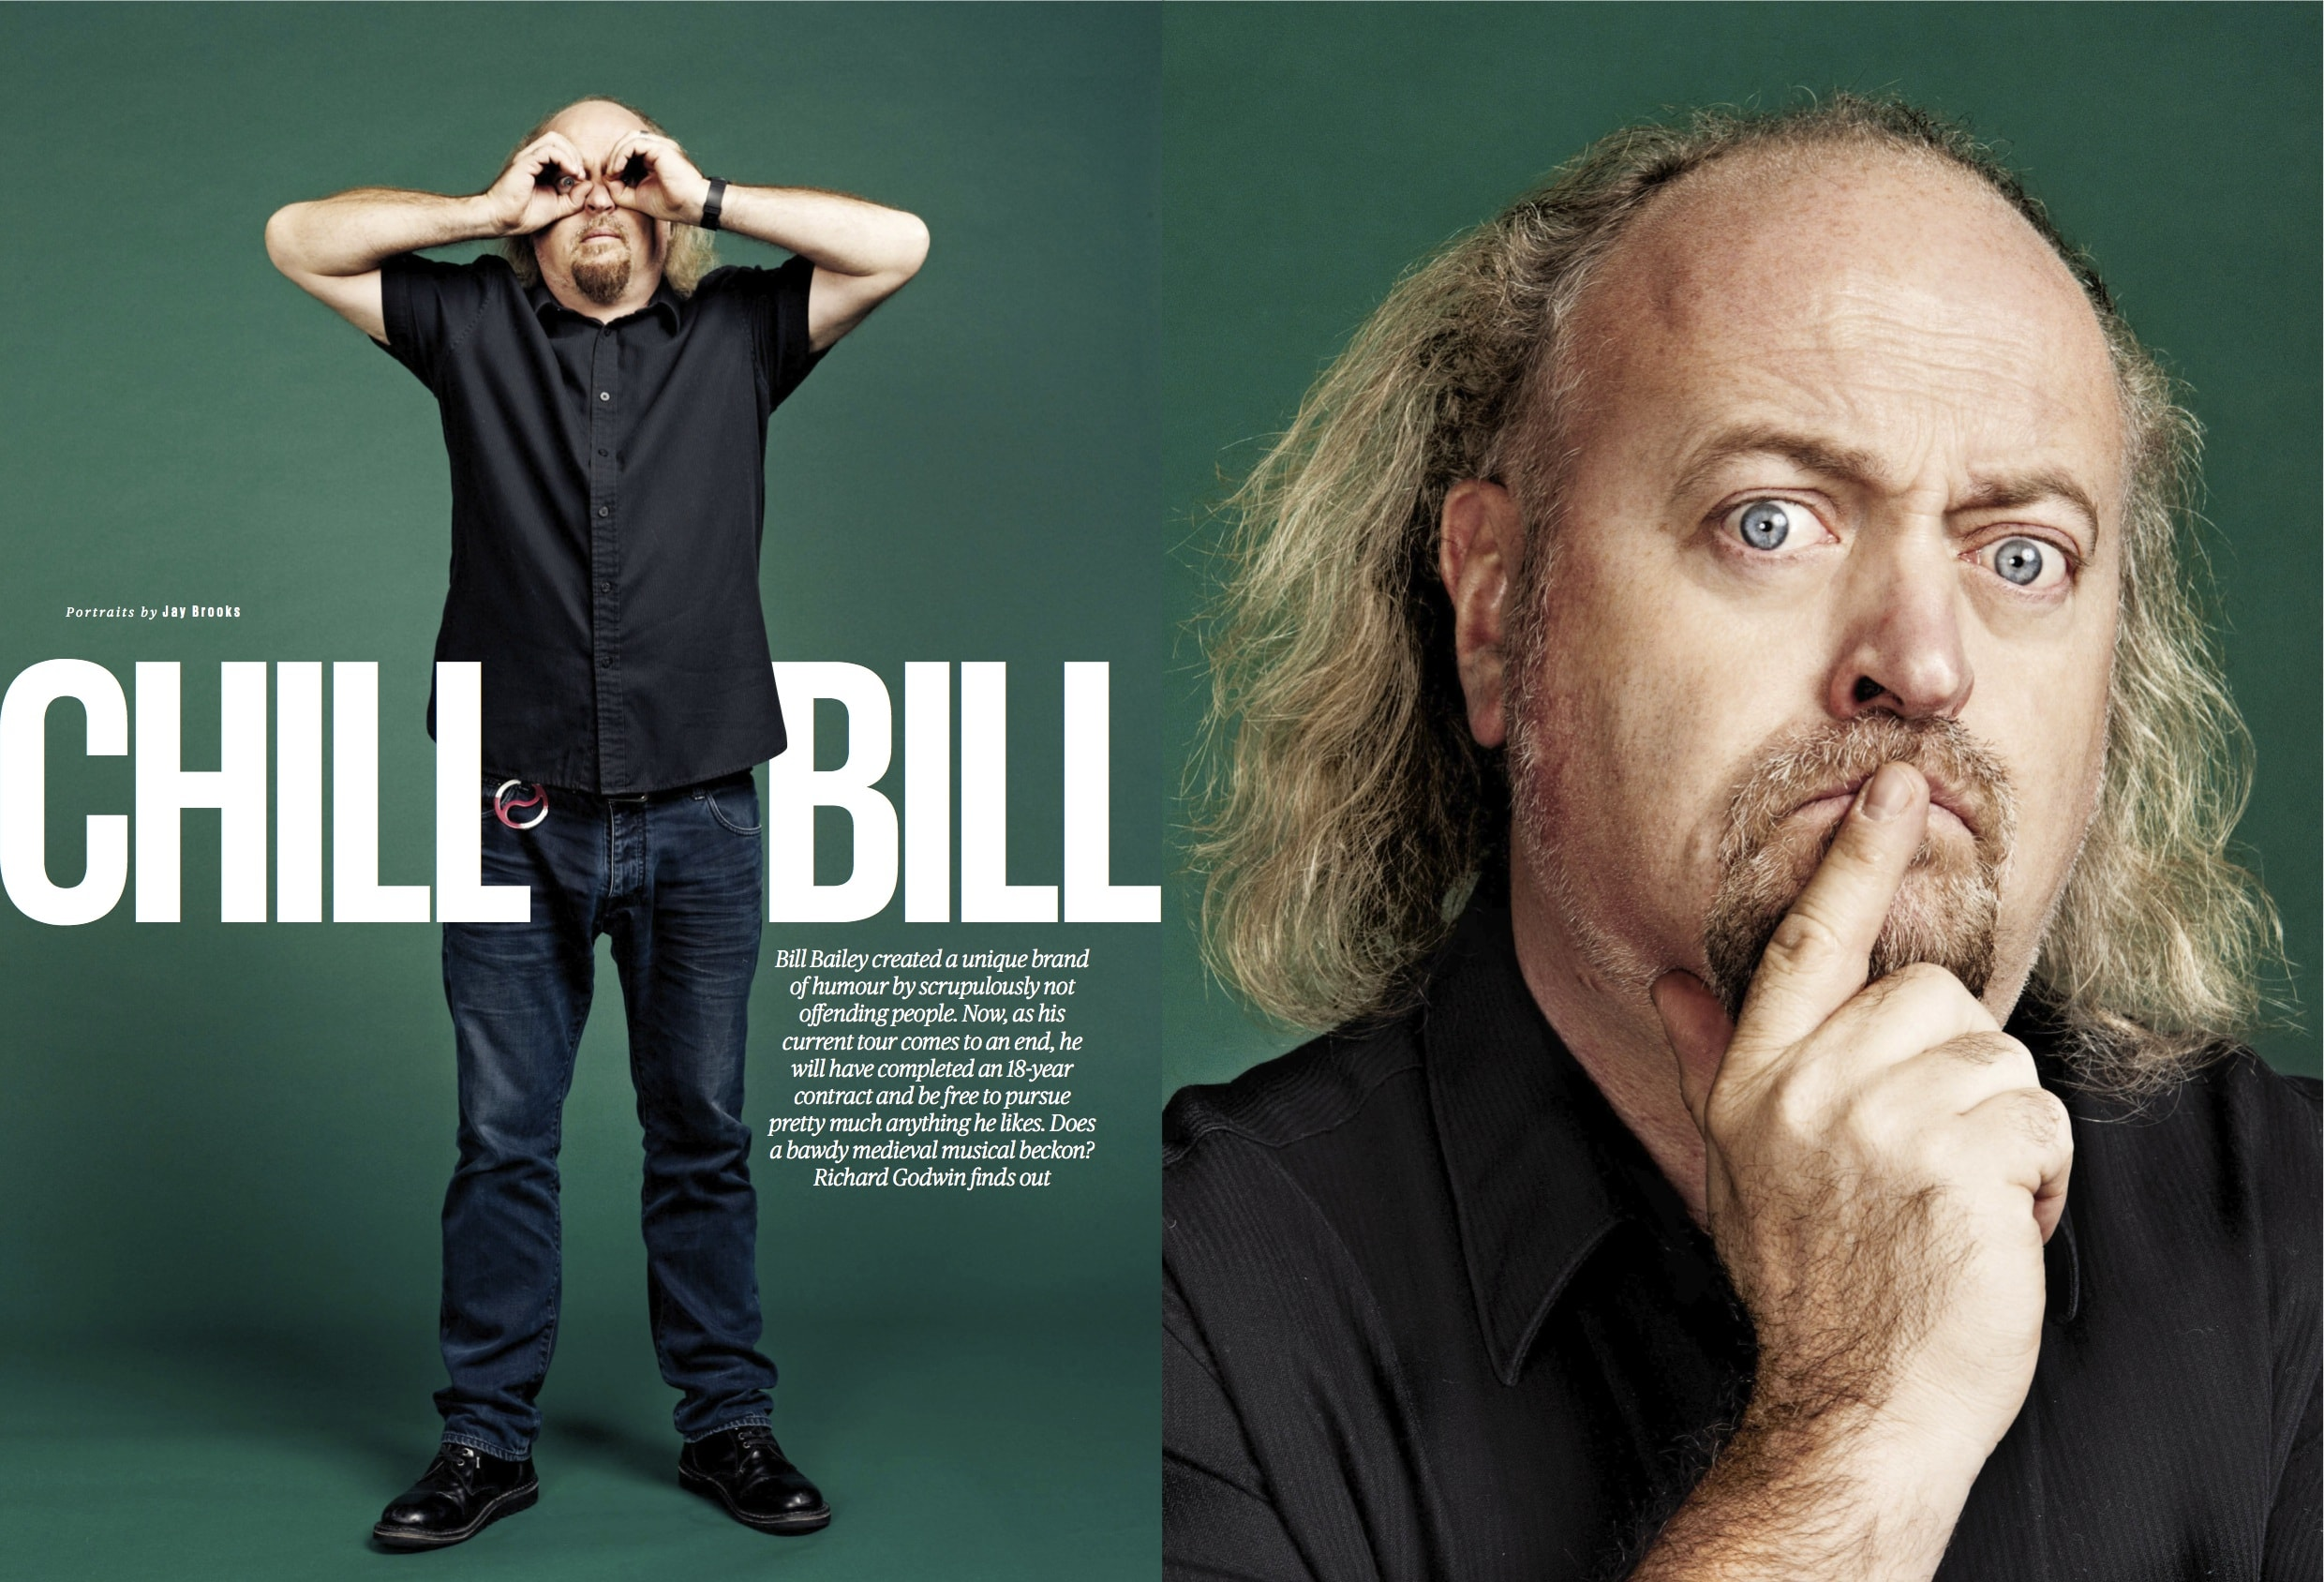 Bill Bailey Backgrounds